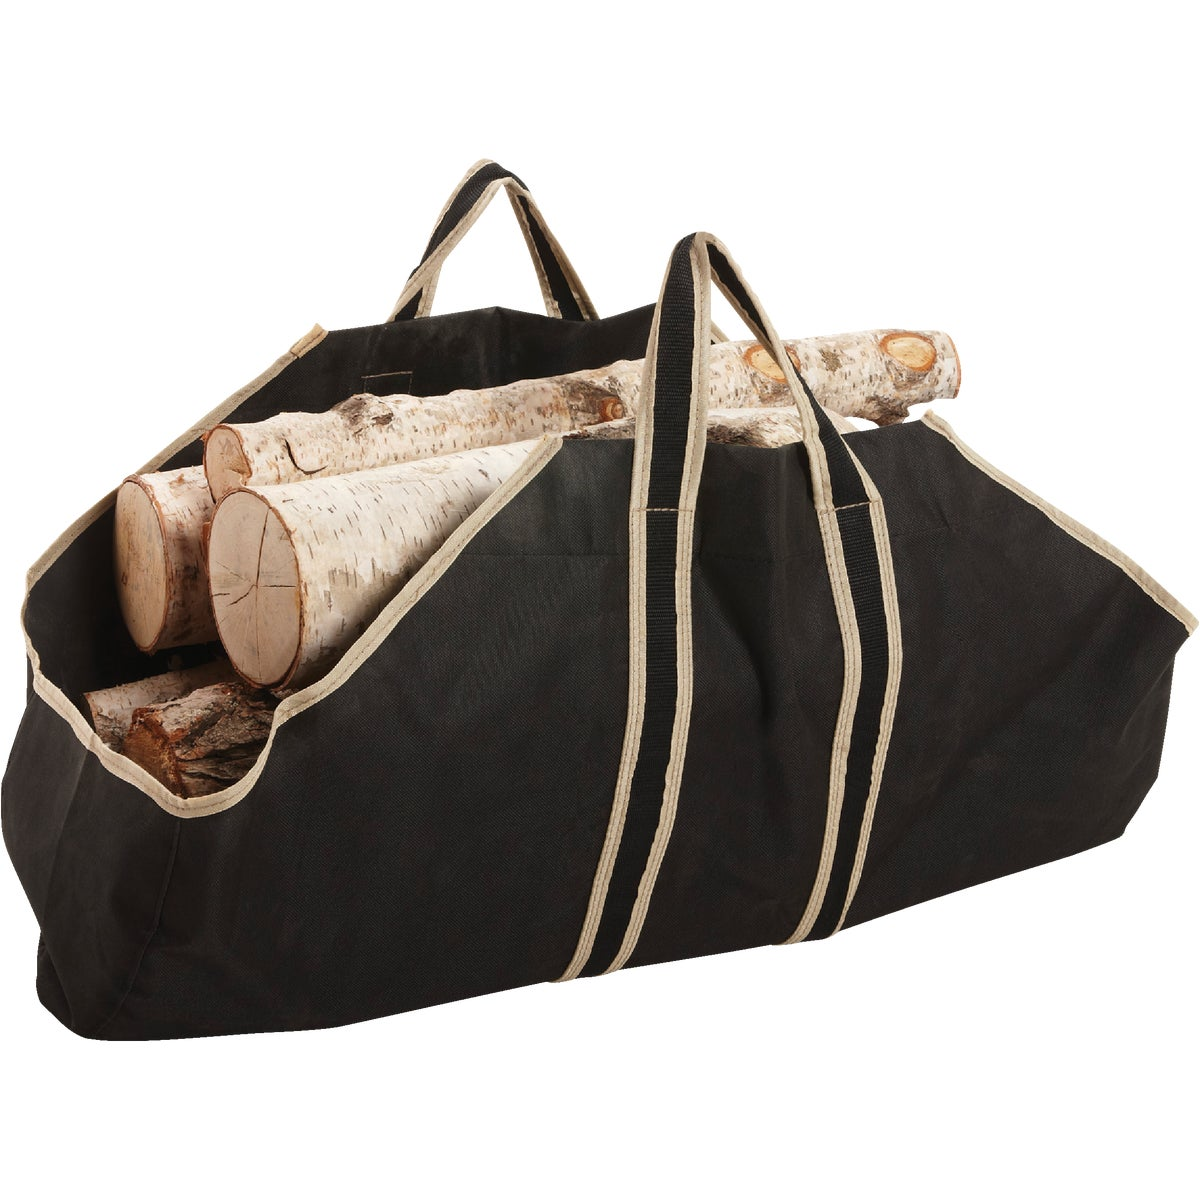 CANVAS LOG CARRIER - WTO-15110 by Do it Best